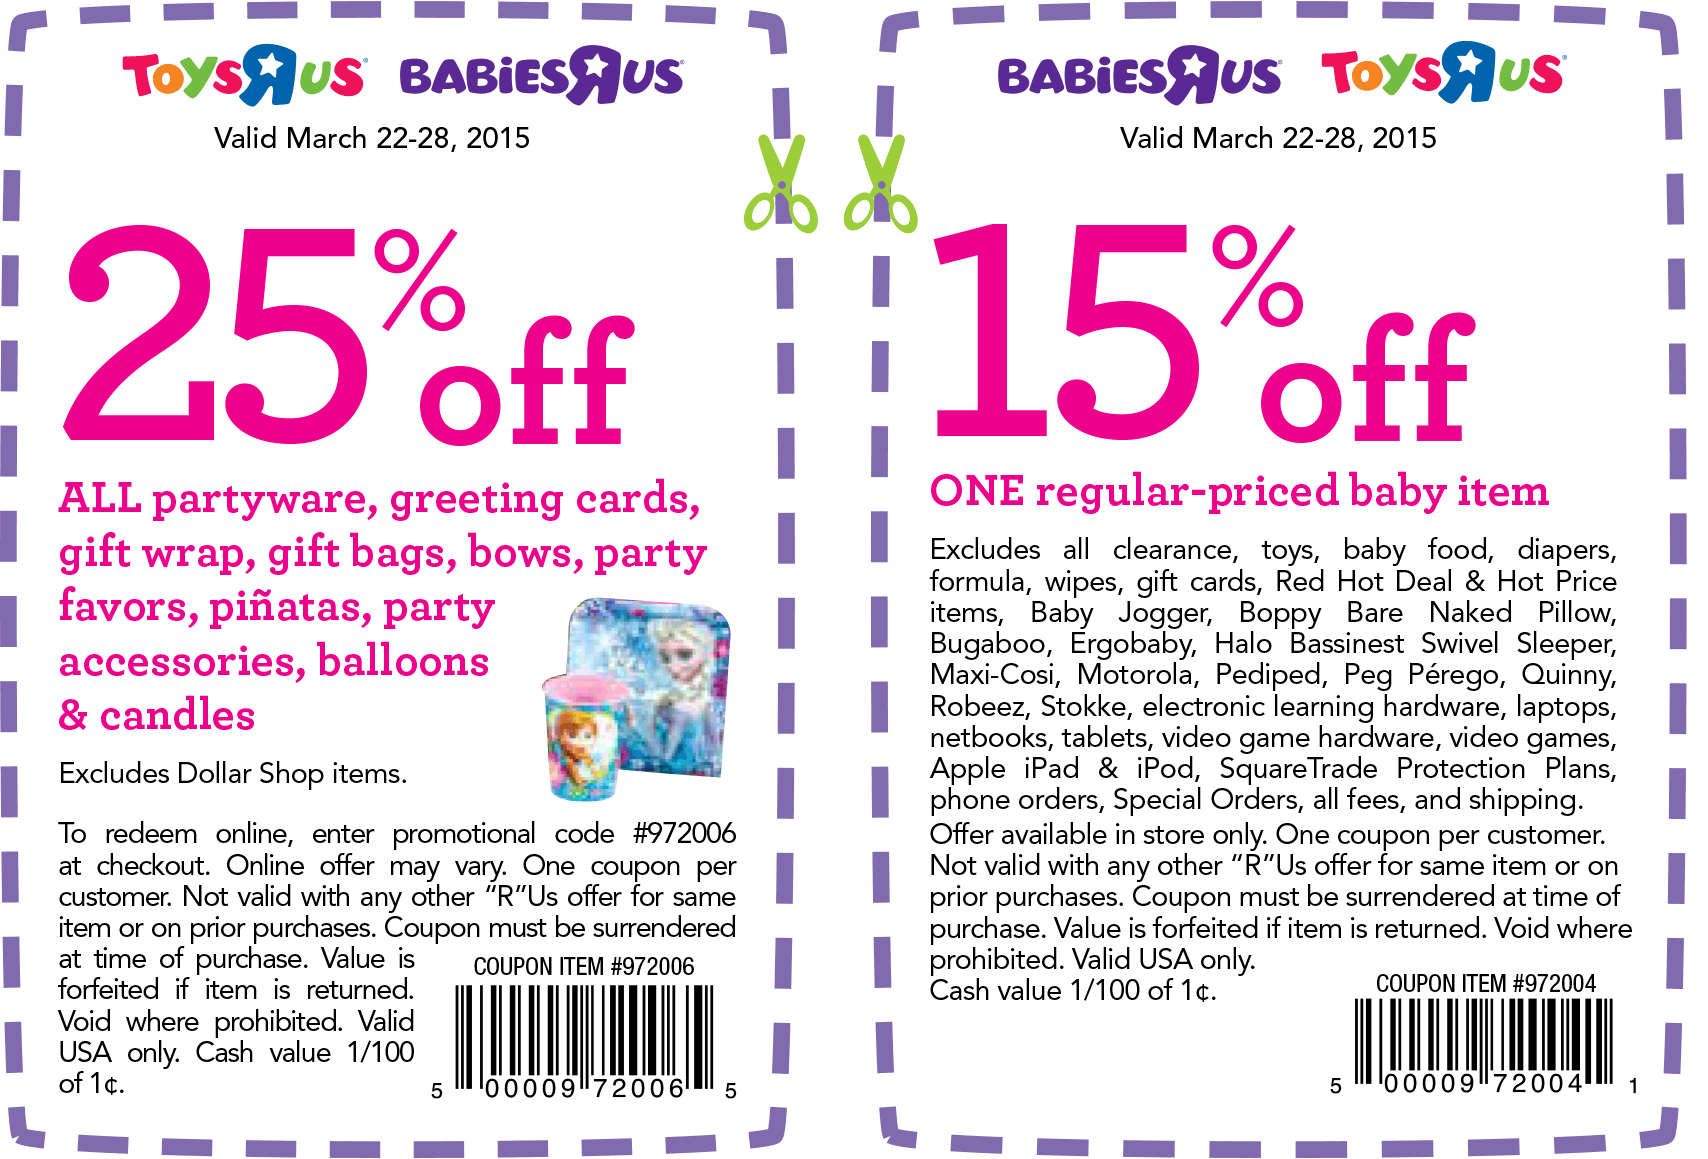 Toys R Us Coupon March 2018 25% off partyware & more at Toys R Us & Babies R Us, or online via promo code 972006